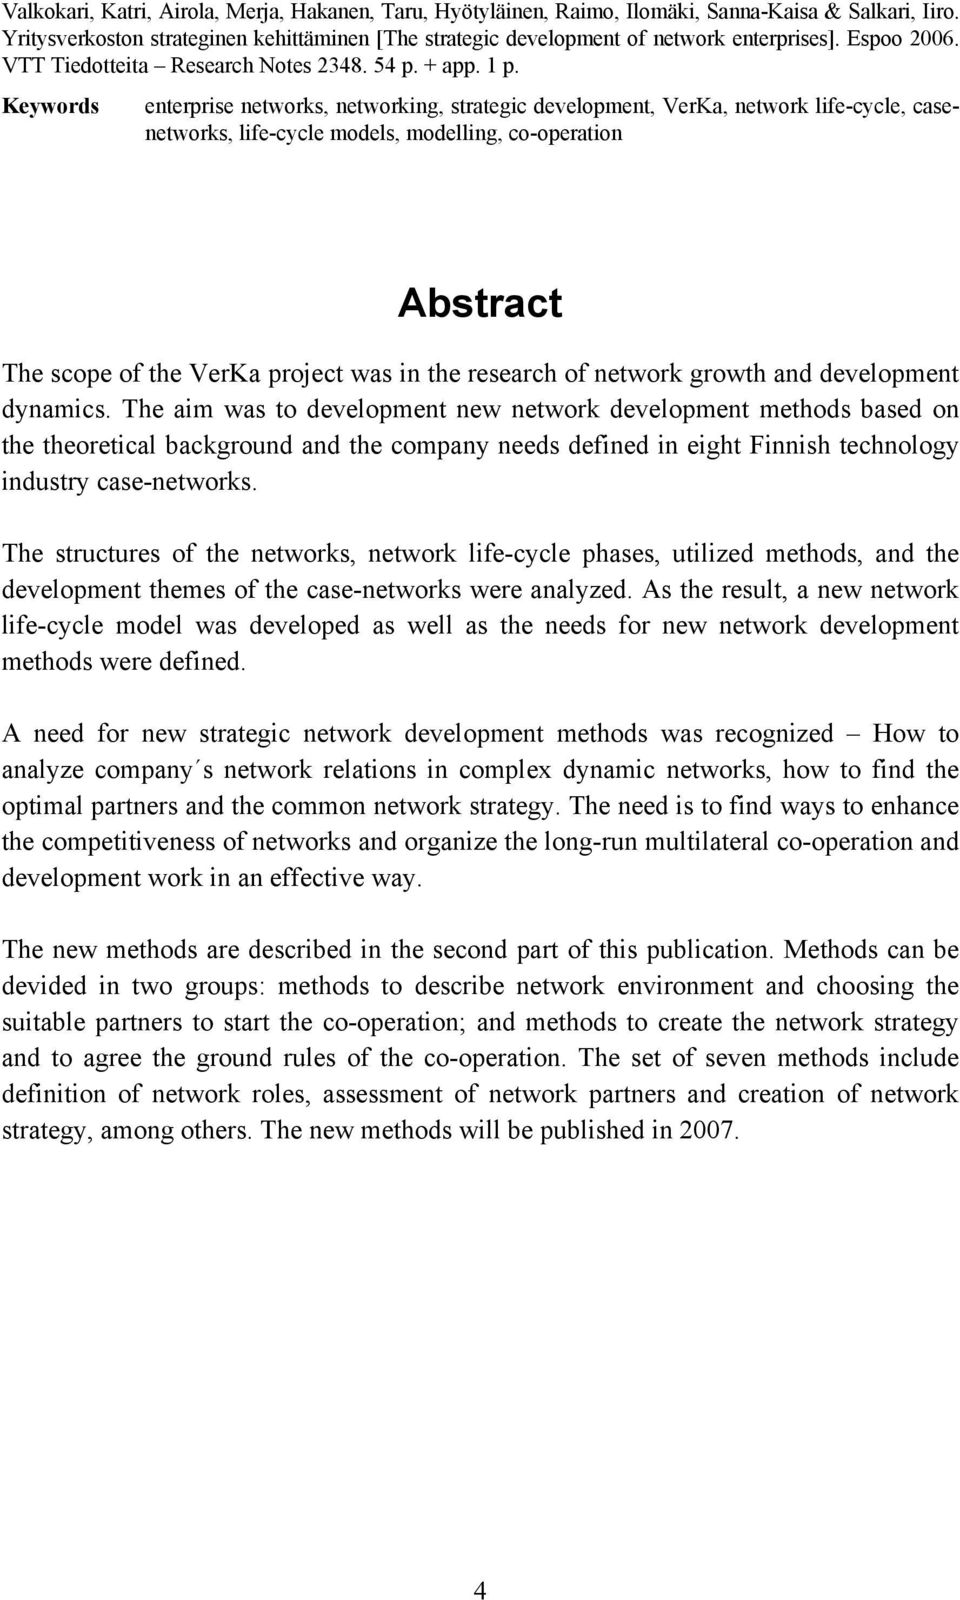 Keywords enterprise networks, networking, strategic development, VerKa, network life-cycle, casenetworks, life-cycle models, modelling, co-operation Abstract The scope of the VerKa project was in the